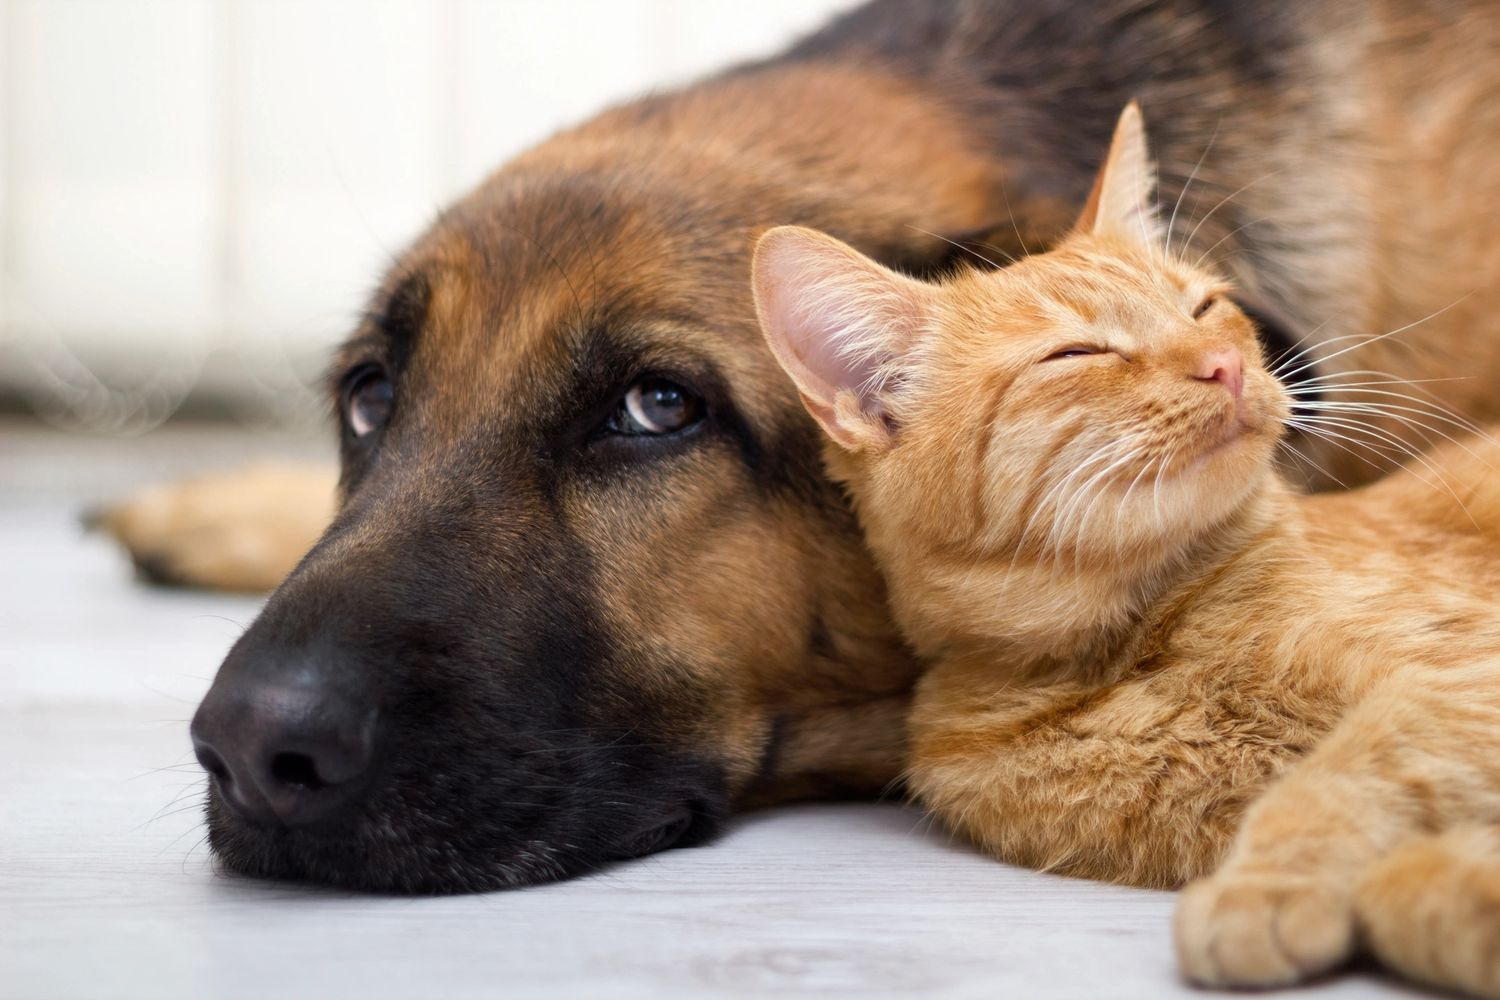 Pet Supplies - Dog and Cat - CBD Products